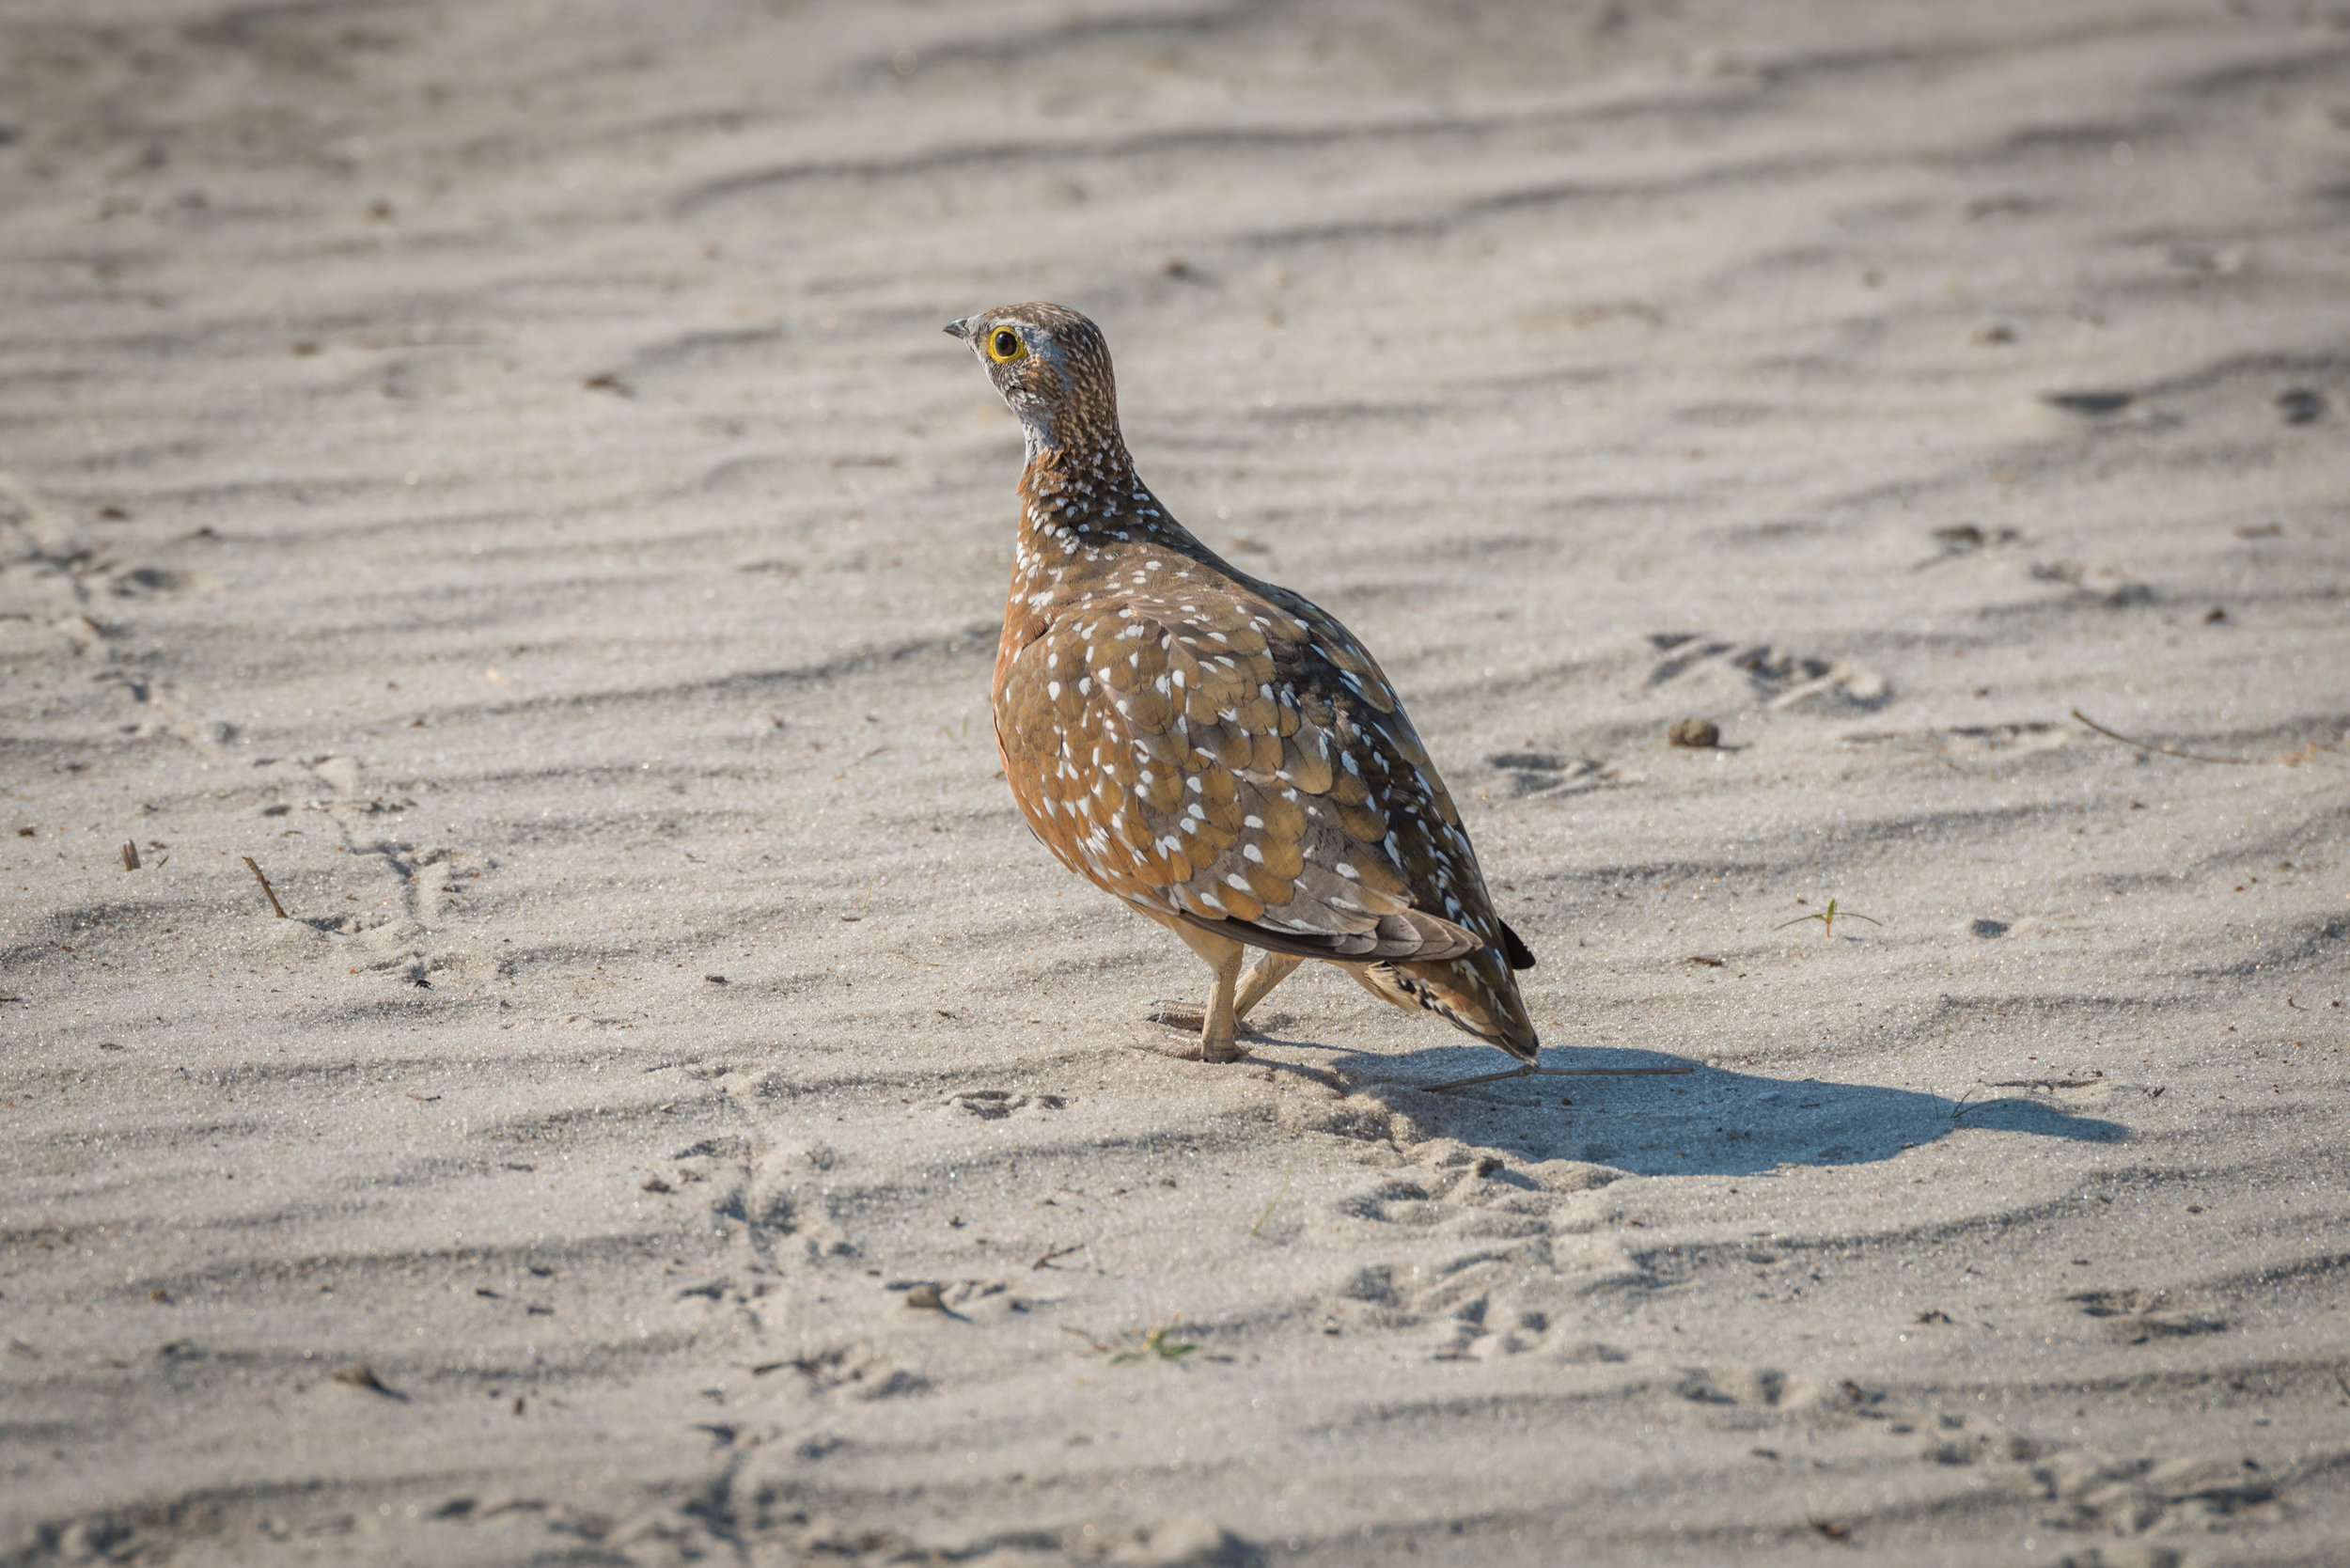 Burchell's sand grouse